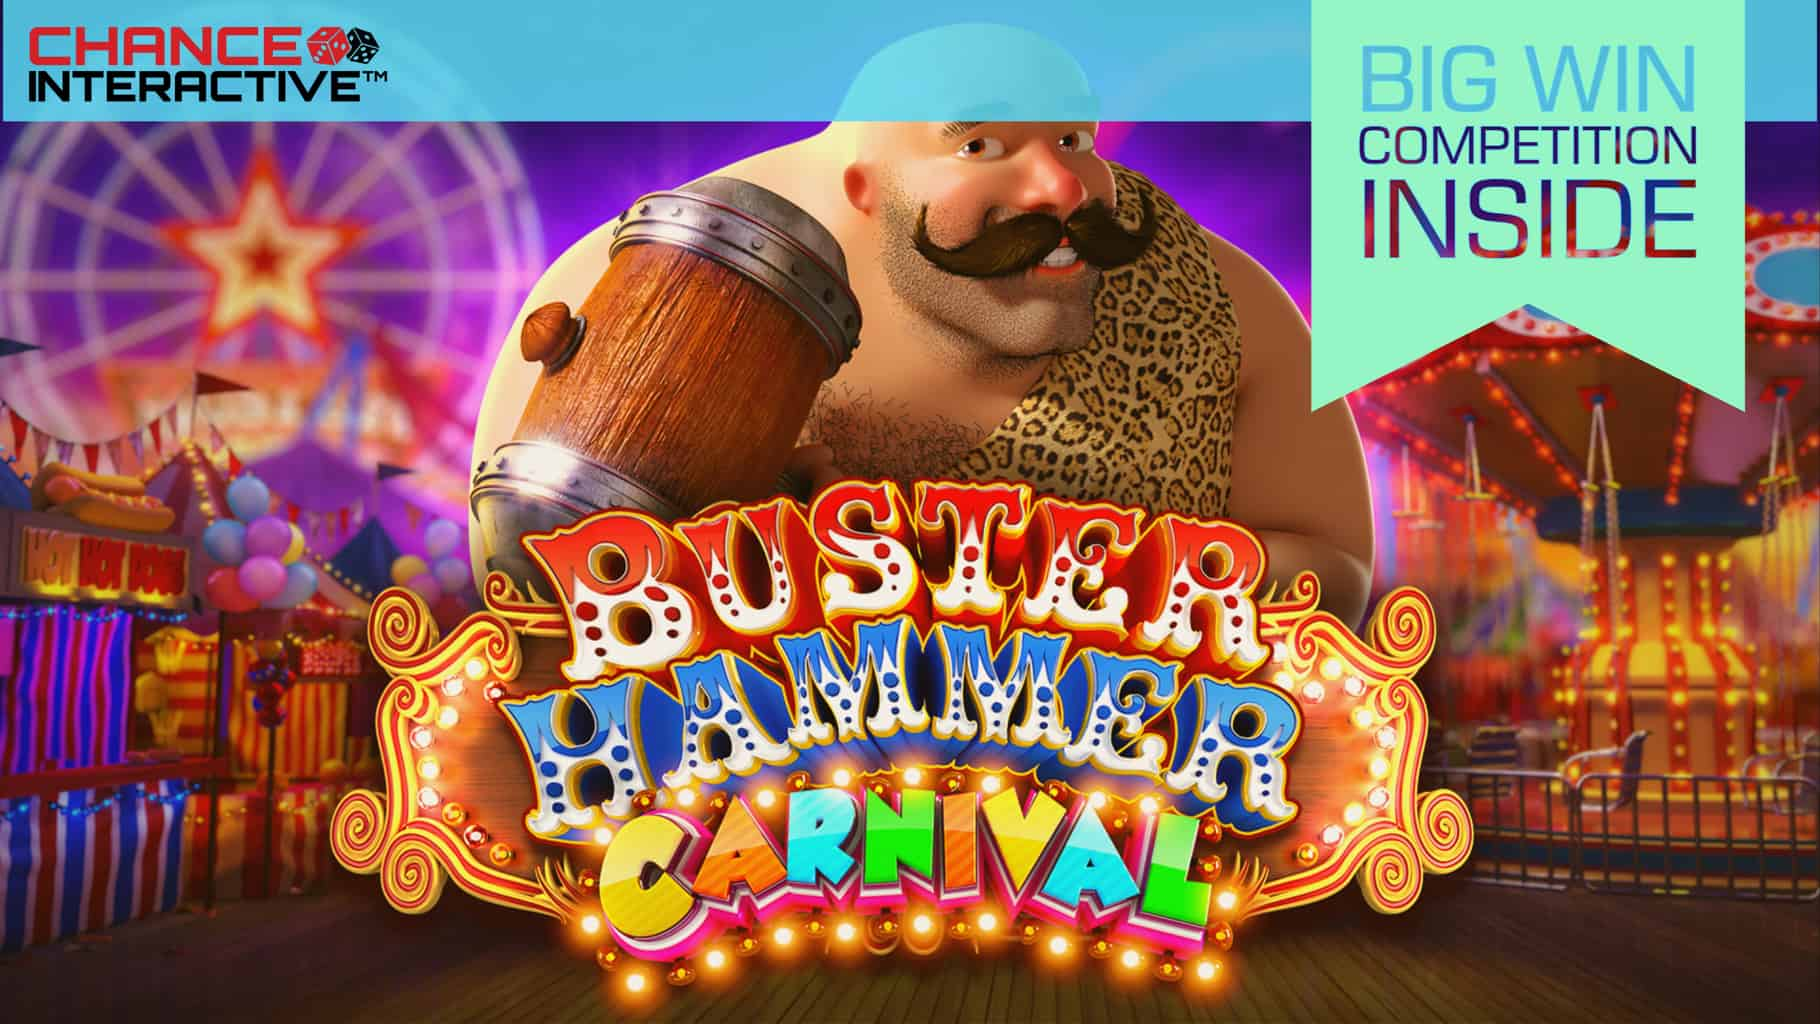 First Giveaway of the Year – Welcome to Chance Interactive and a Brand New Buster!